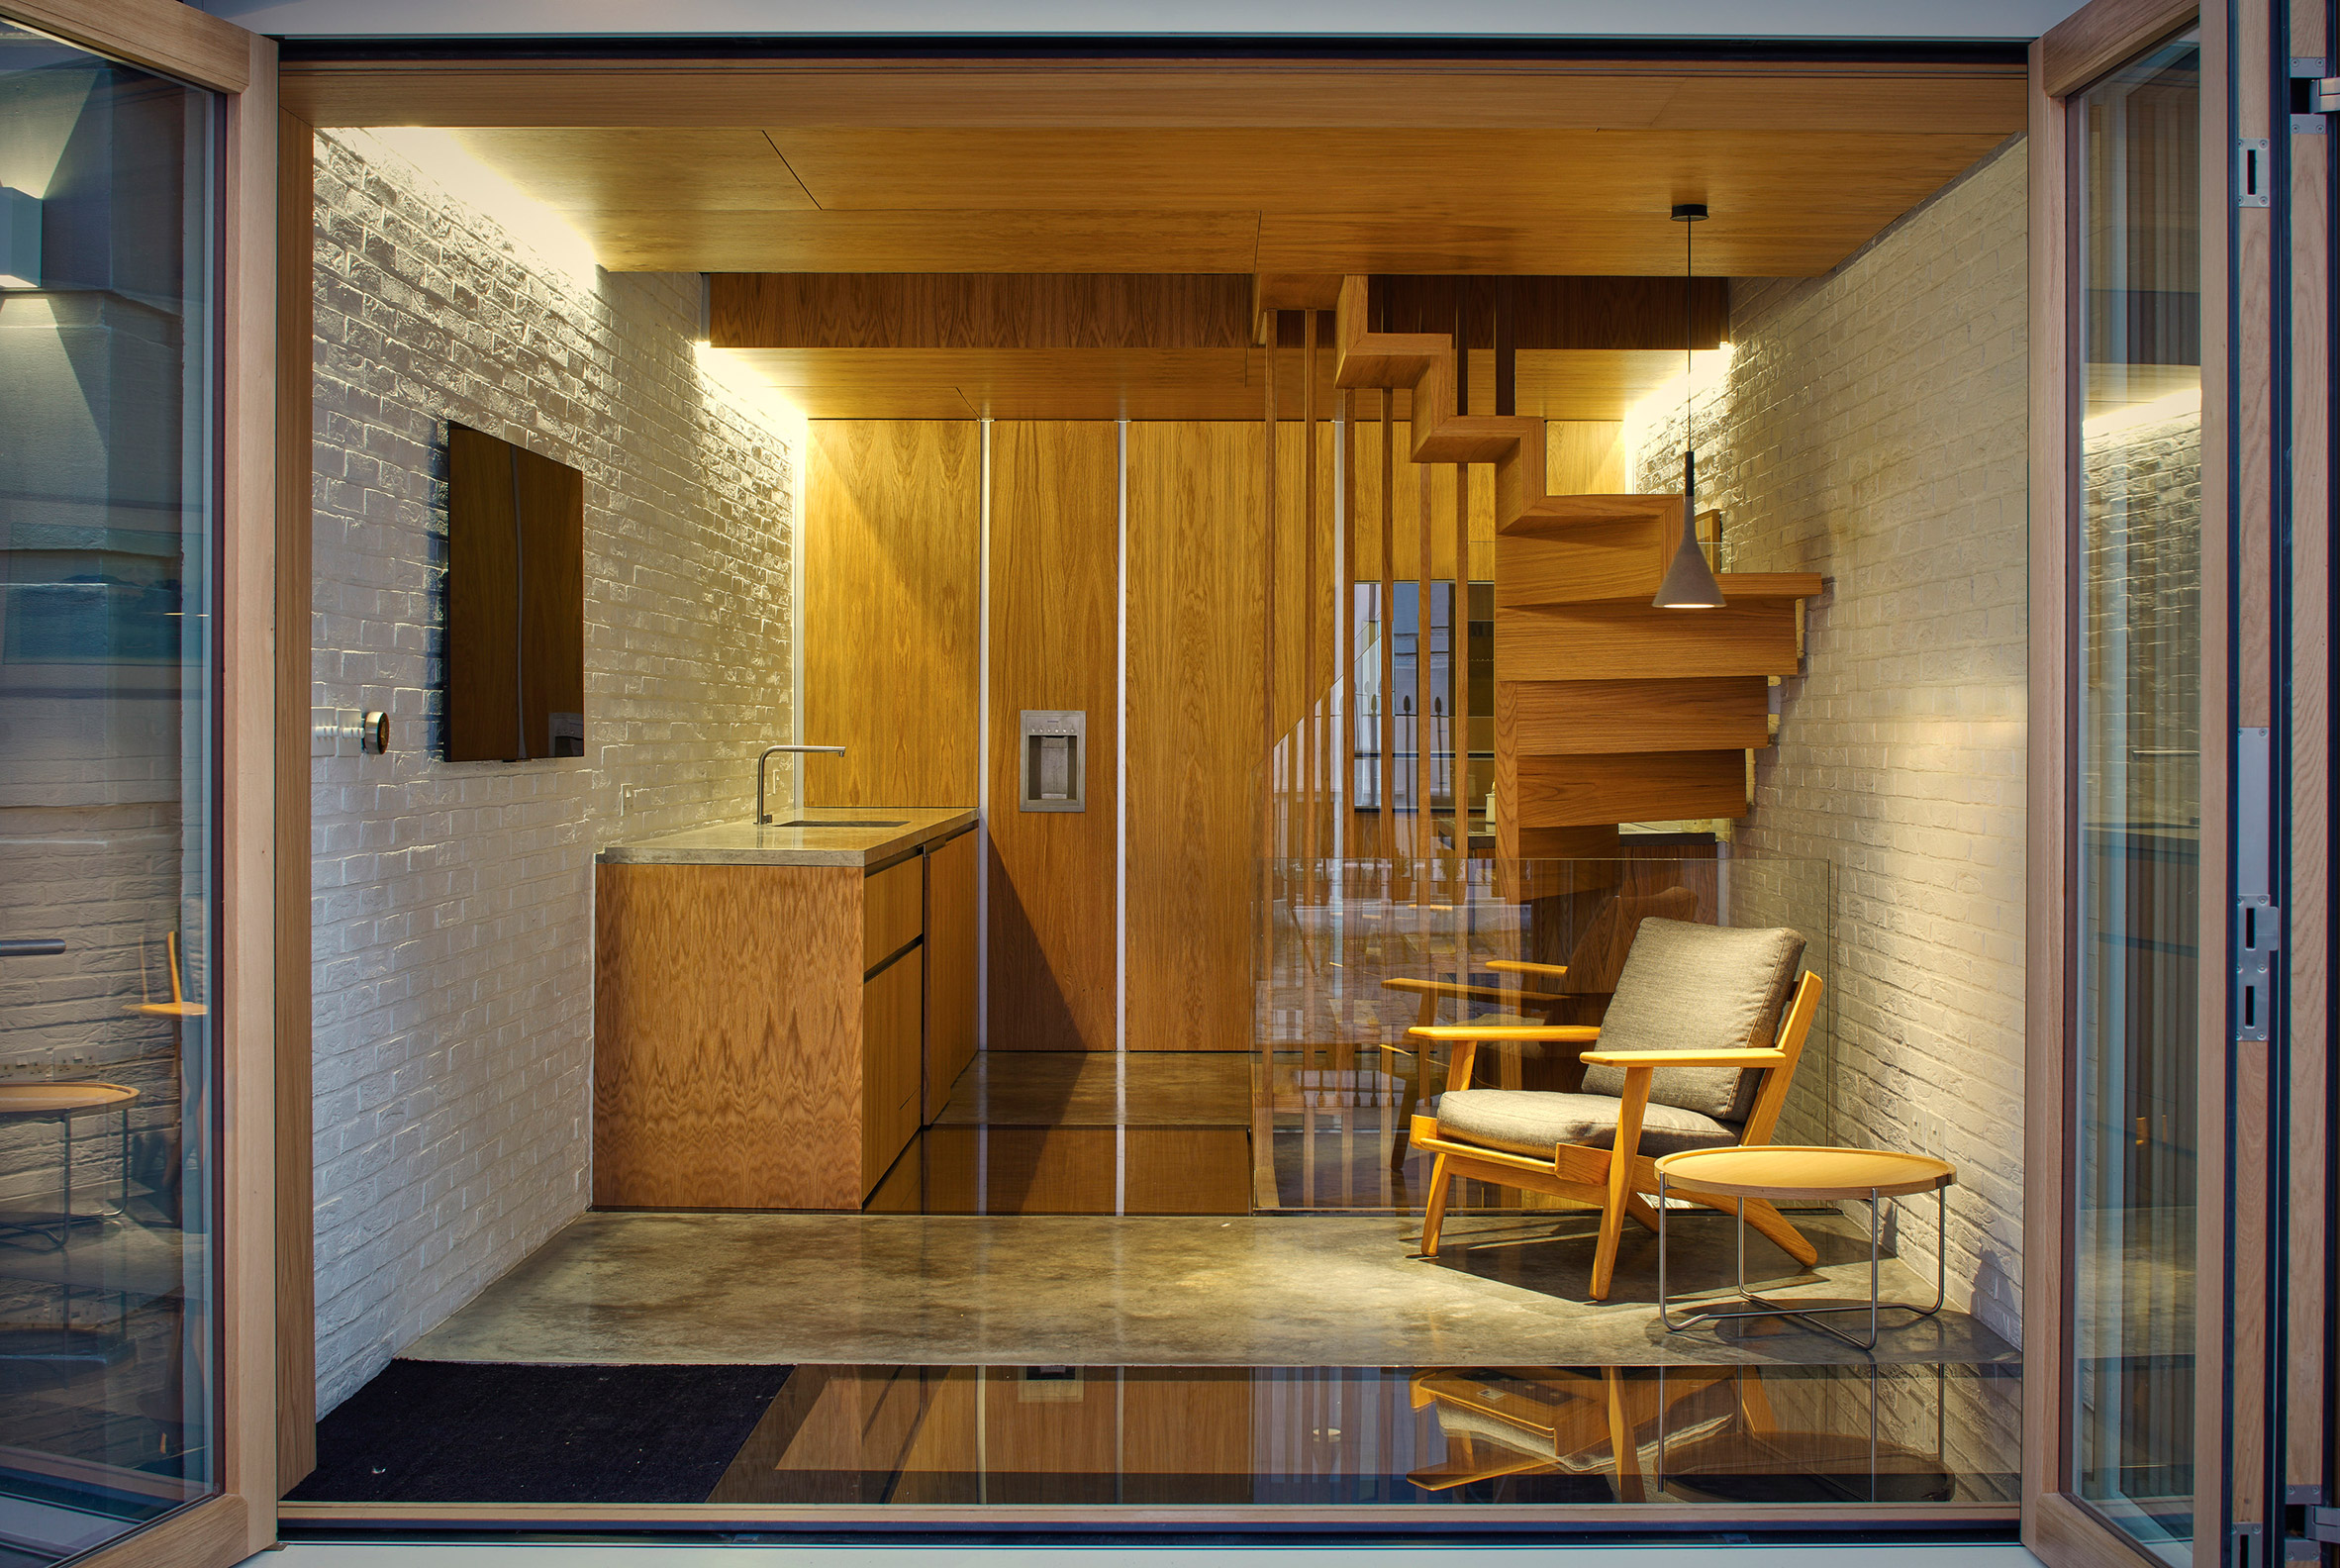 modern-mews-phil-coffey-architecture-residential-renovation-london_dezeen_2364_col_15